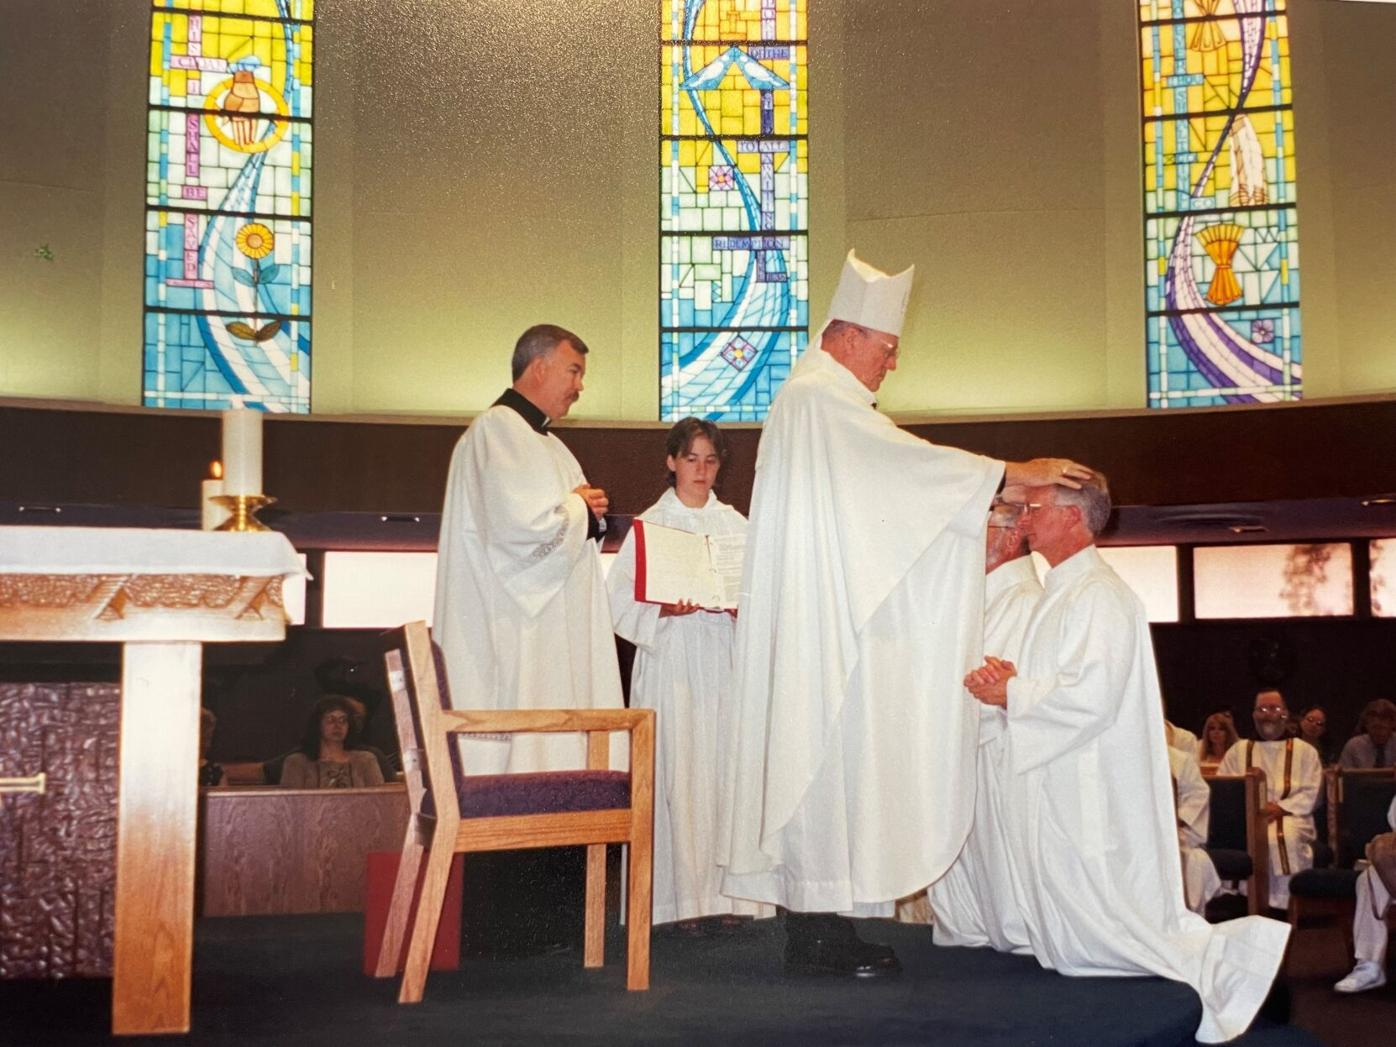 Bishop Richard Hanifen ordains Deacon Dave Camous, June 2, 2002 at St. Francis of Assisi Catholic Church, Colorado Springs.